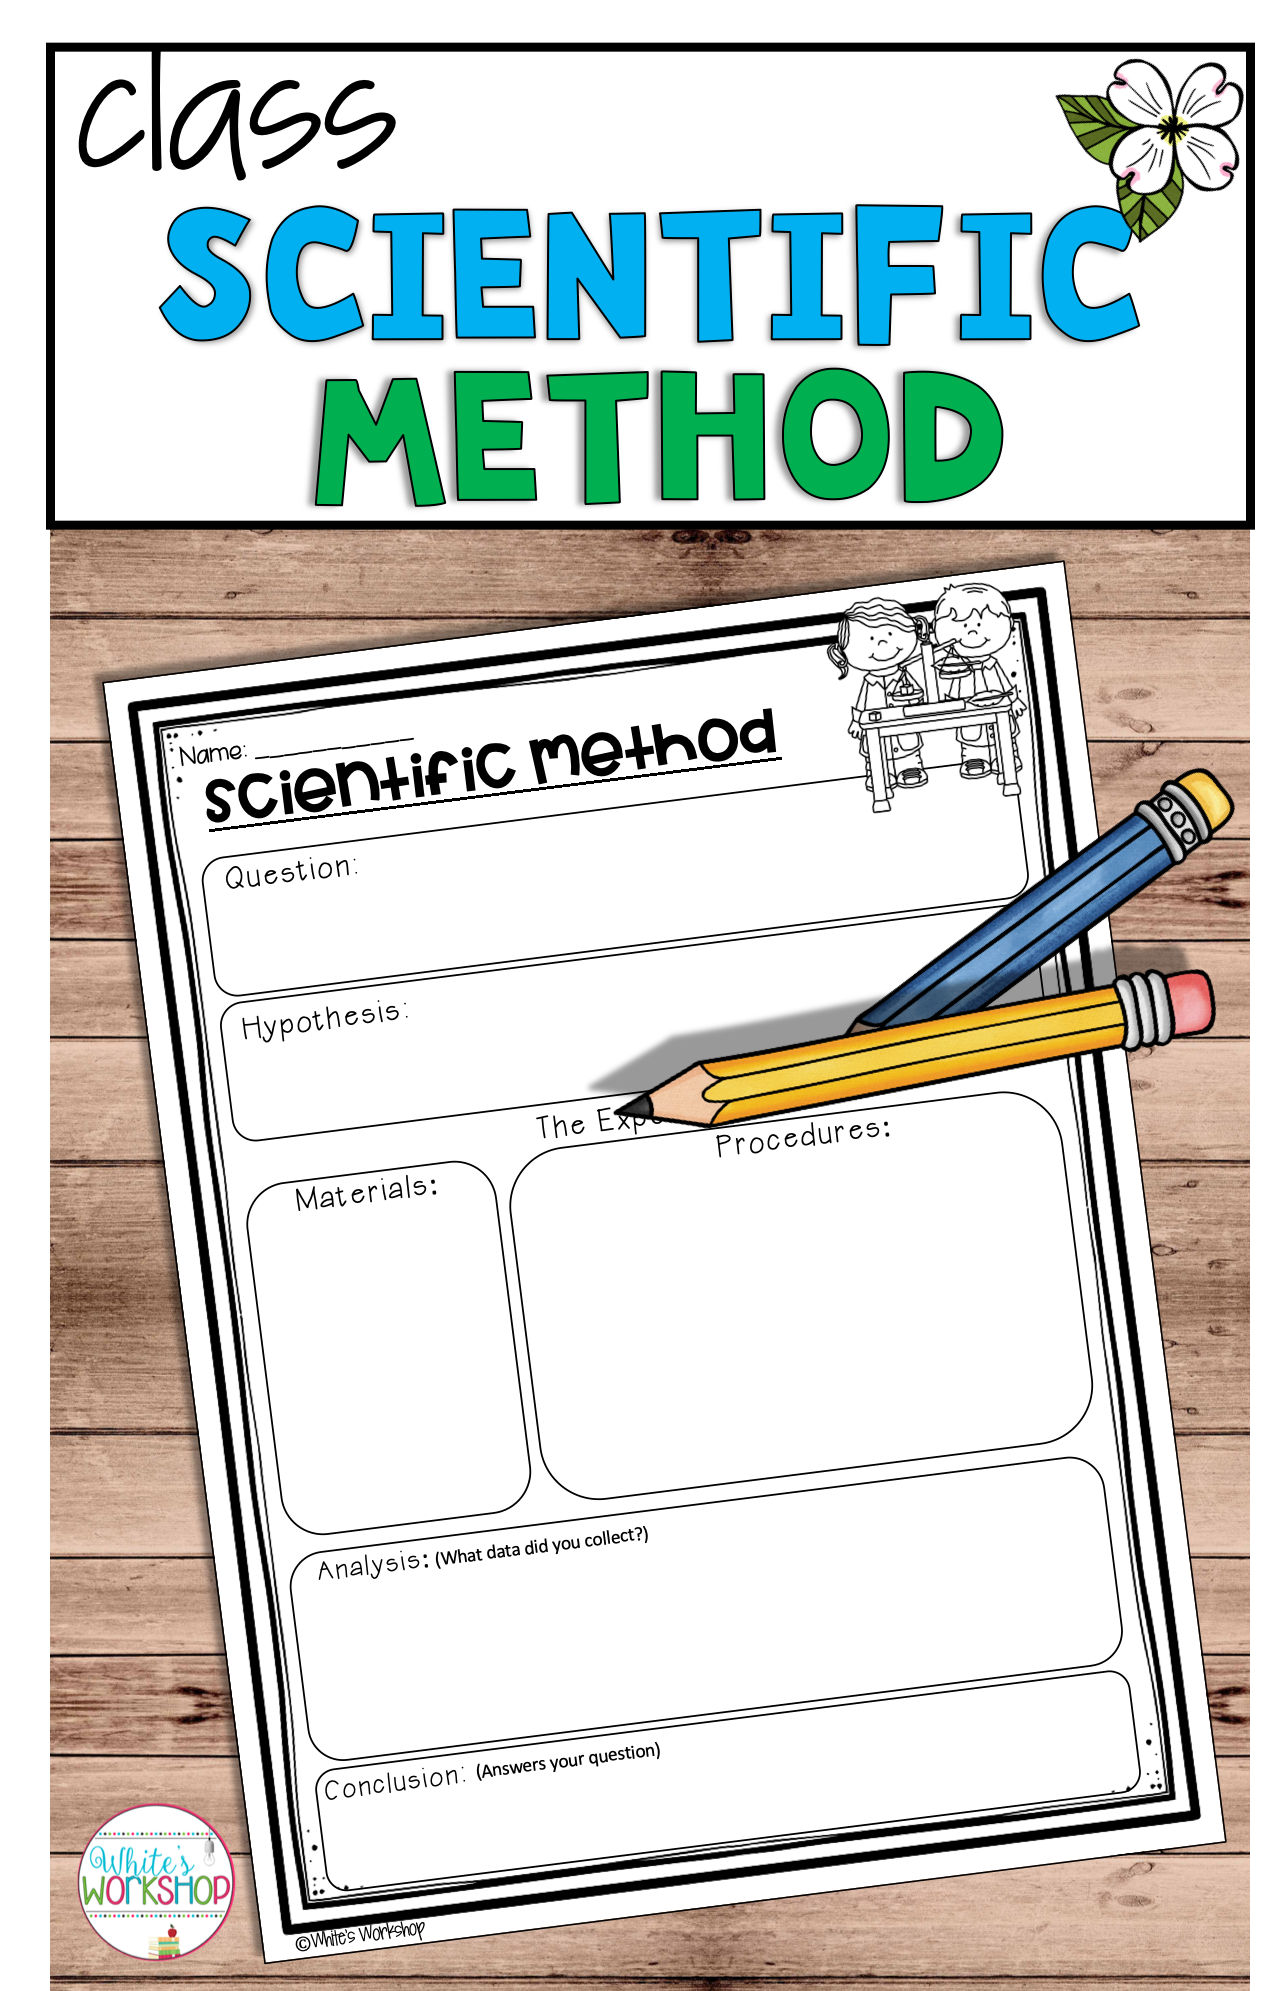 Scientific Method Posters And Worksheets